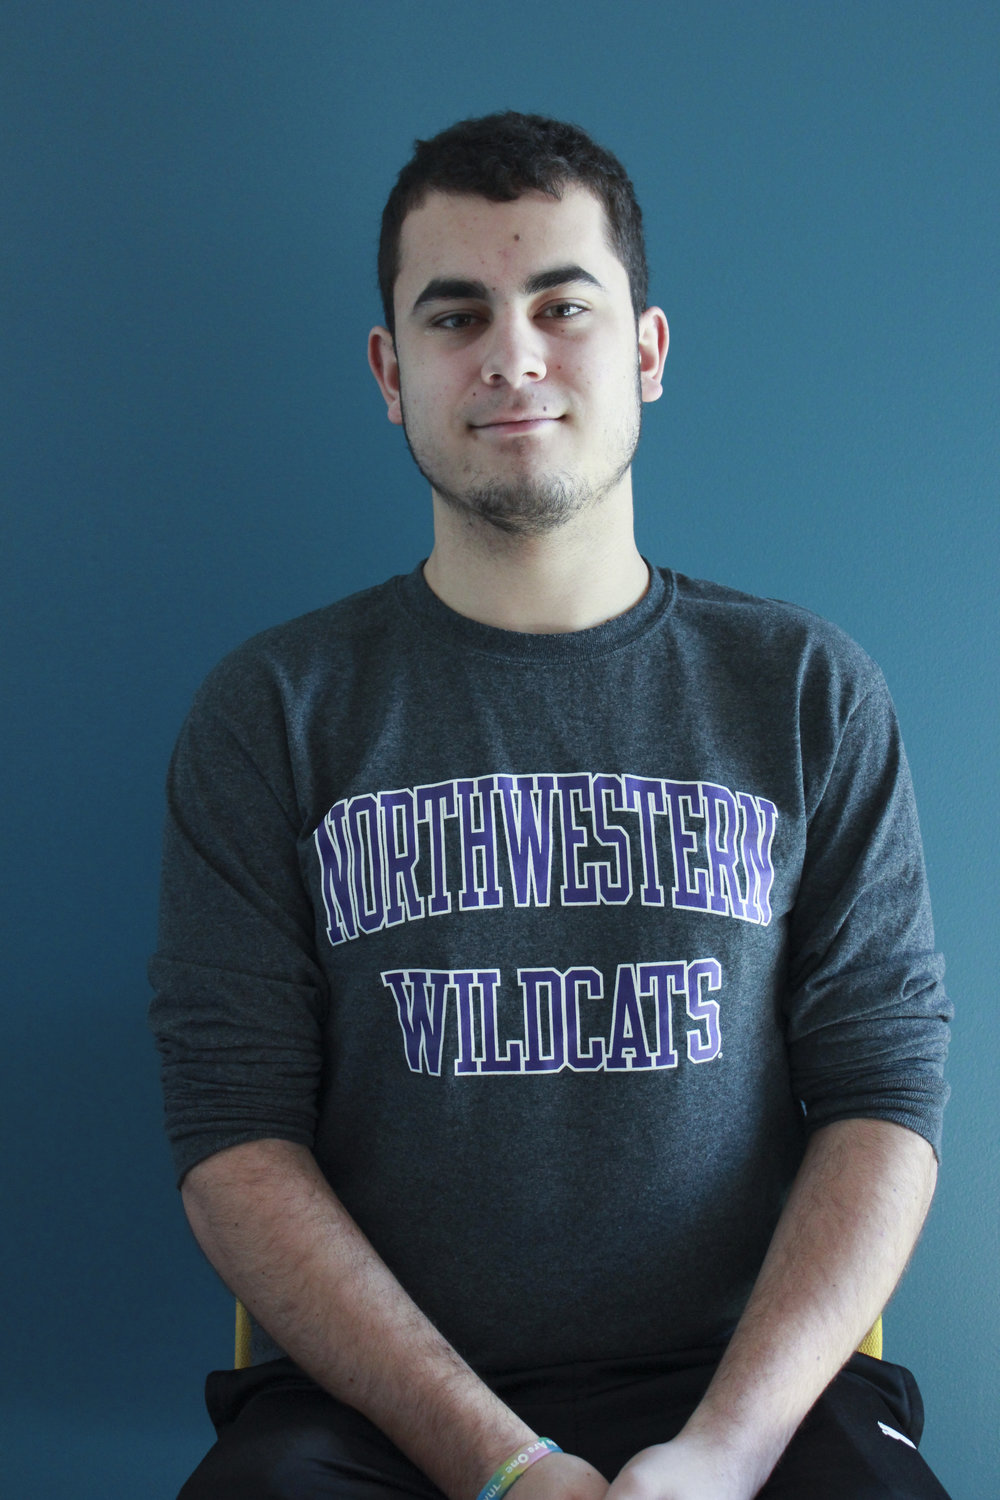 Andrew Weiss - Andrew Weiss is a journalism major from Tampa, Florida. He is in his third year at Quinnipiac, and plans on graduating a year early this May before going to Northwestern's Medill School of Journalism for graduate school. Andrew is not a fan of the wind that makes him cold every day, but he powers through.